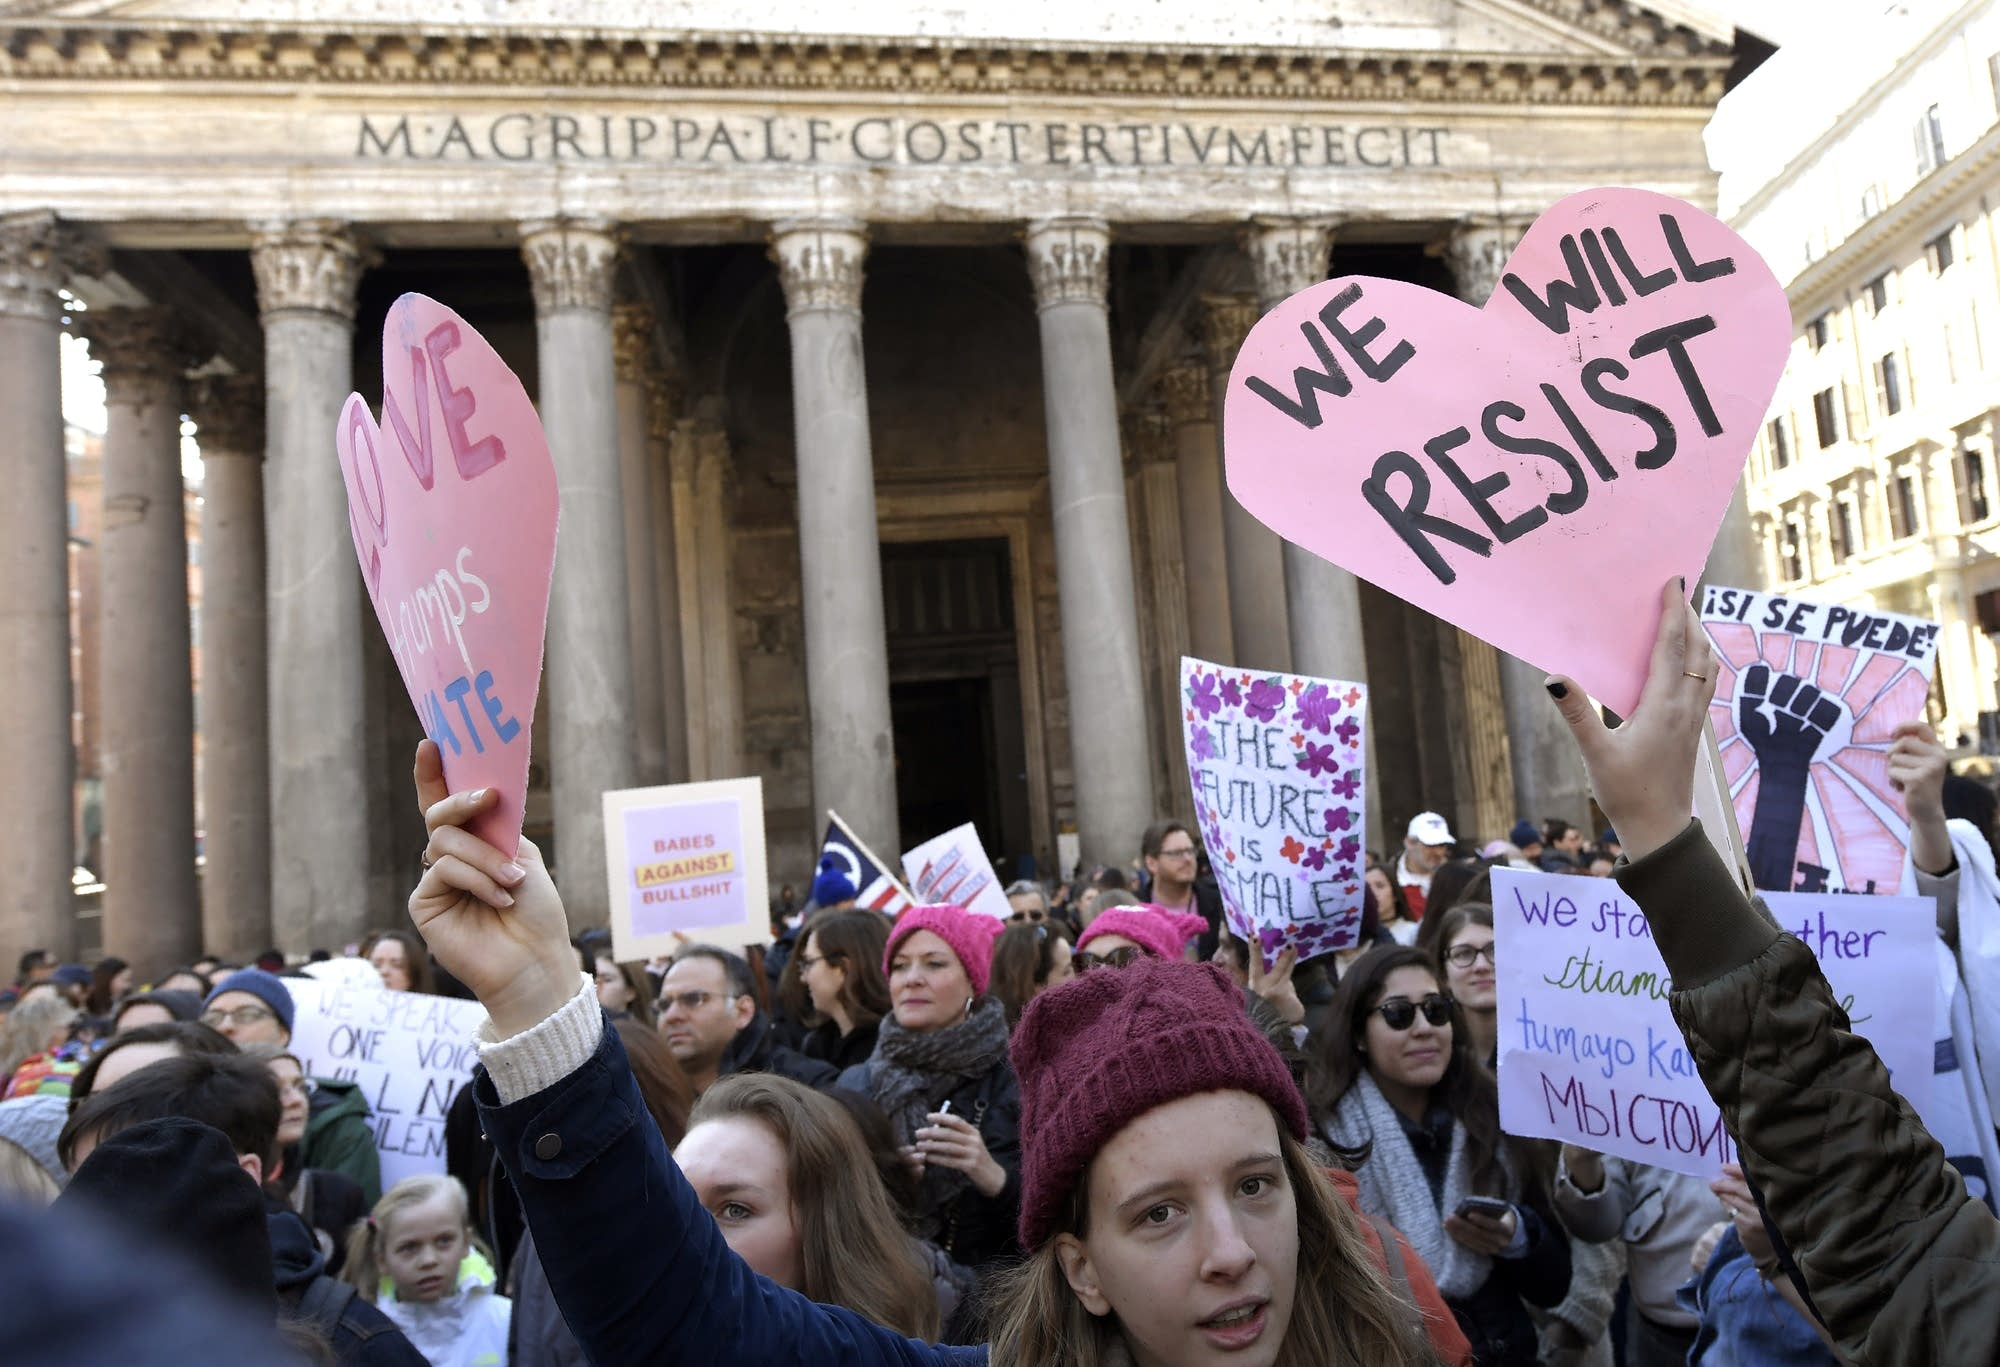 Rome, Italy: Protesters rally the day after the inauguration.